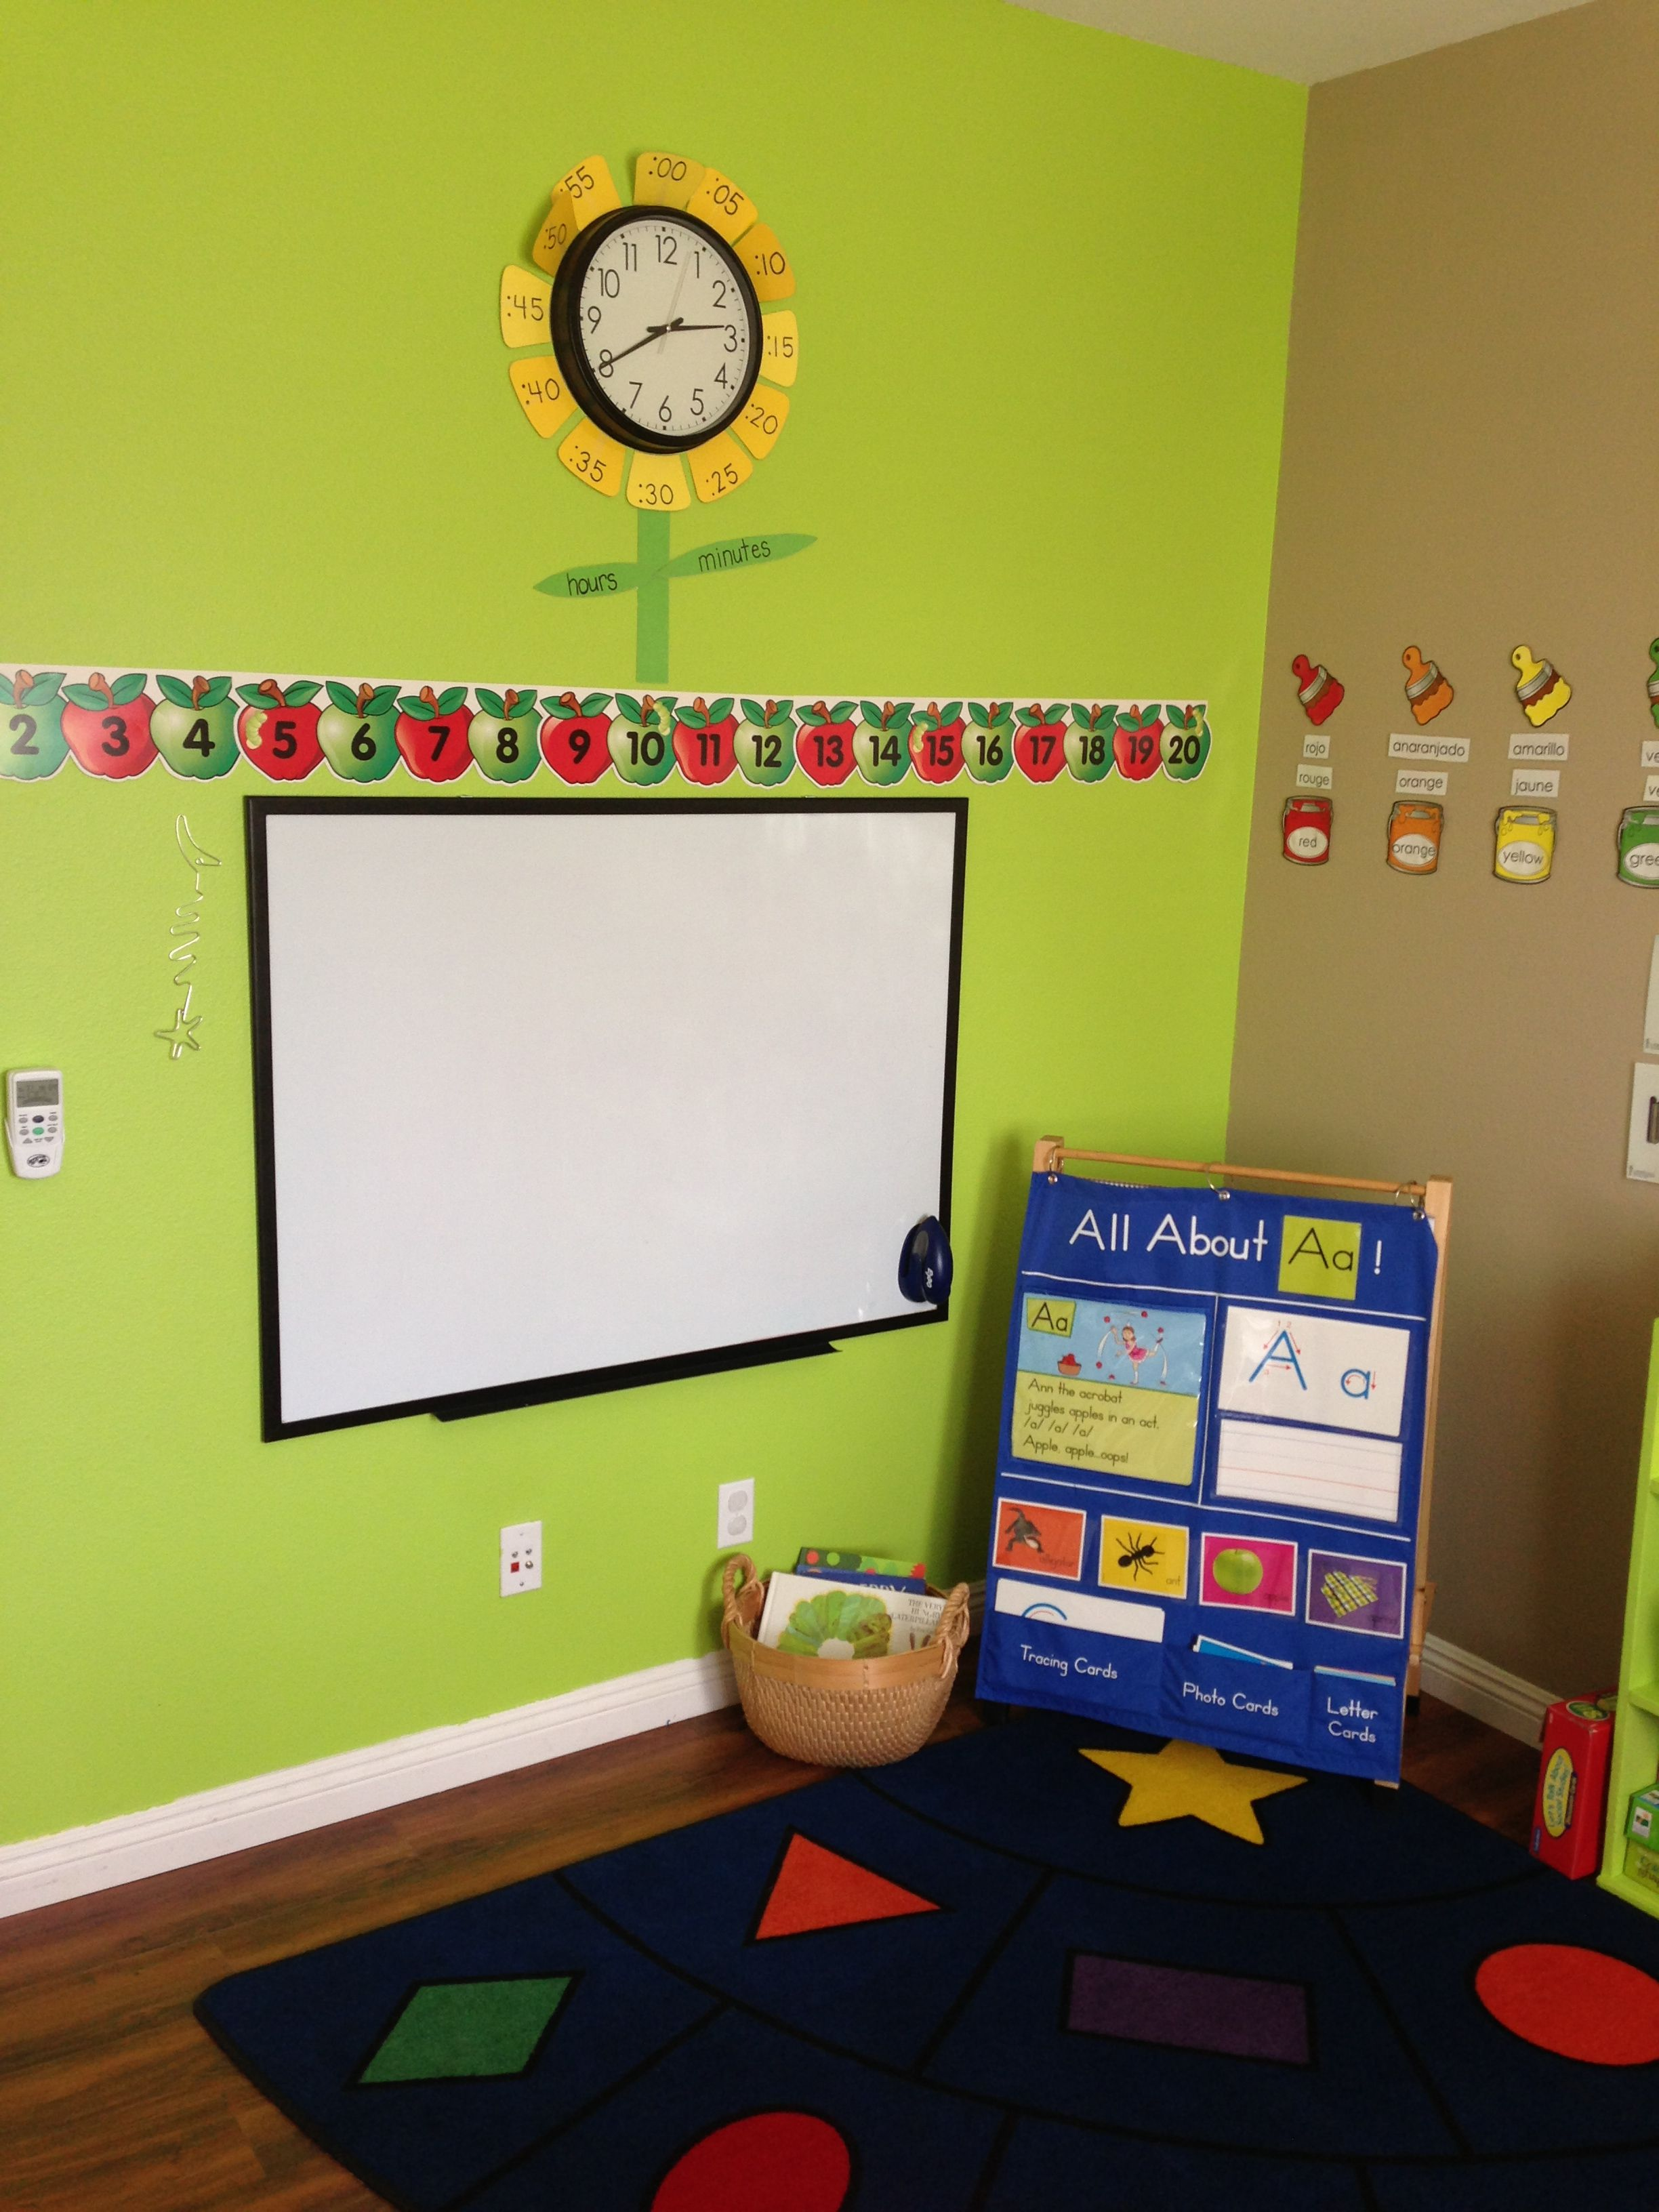 Would Like This Classroom At Home For Tutoring